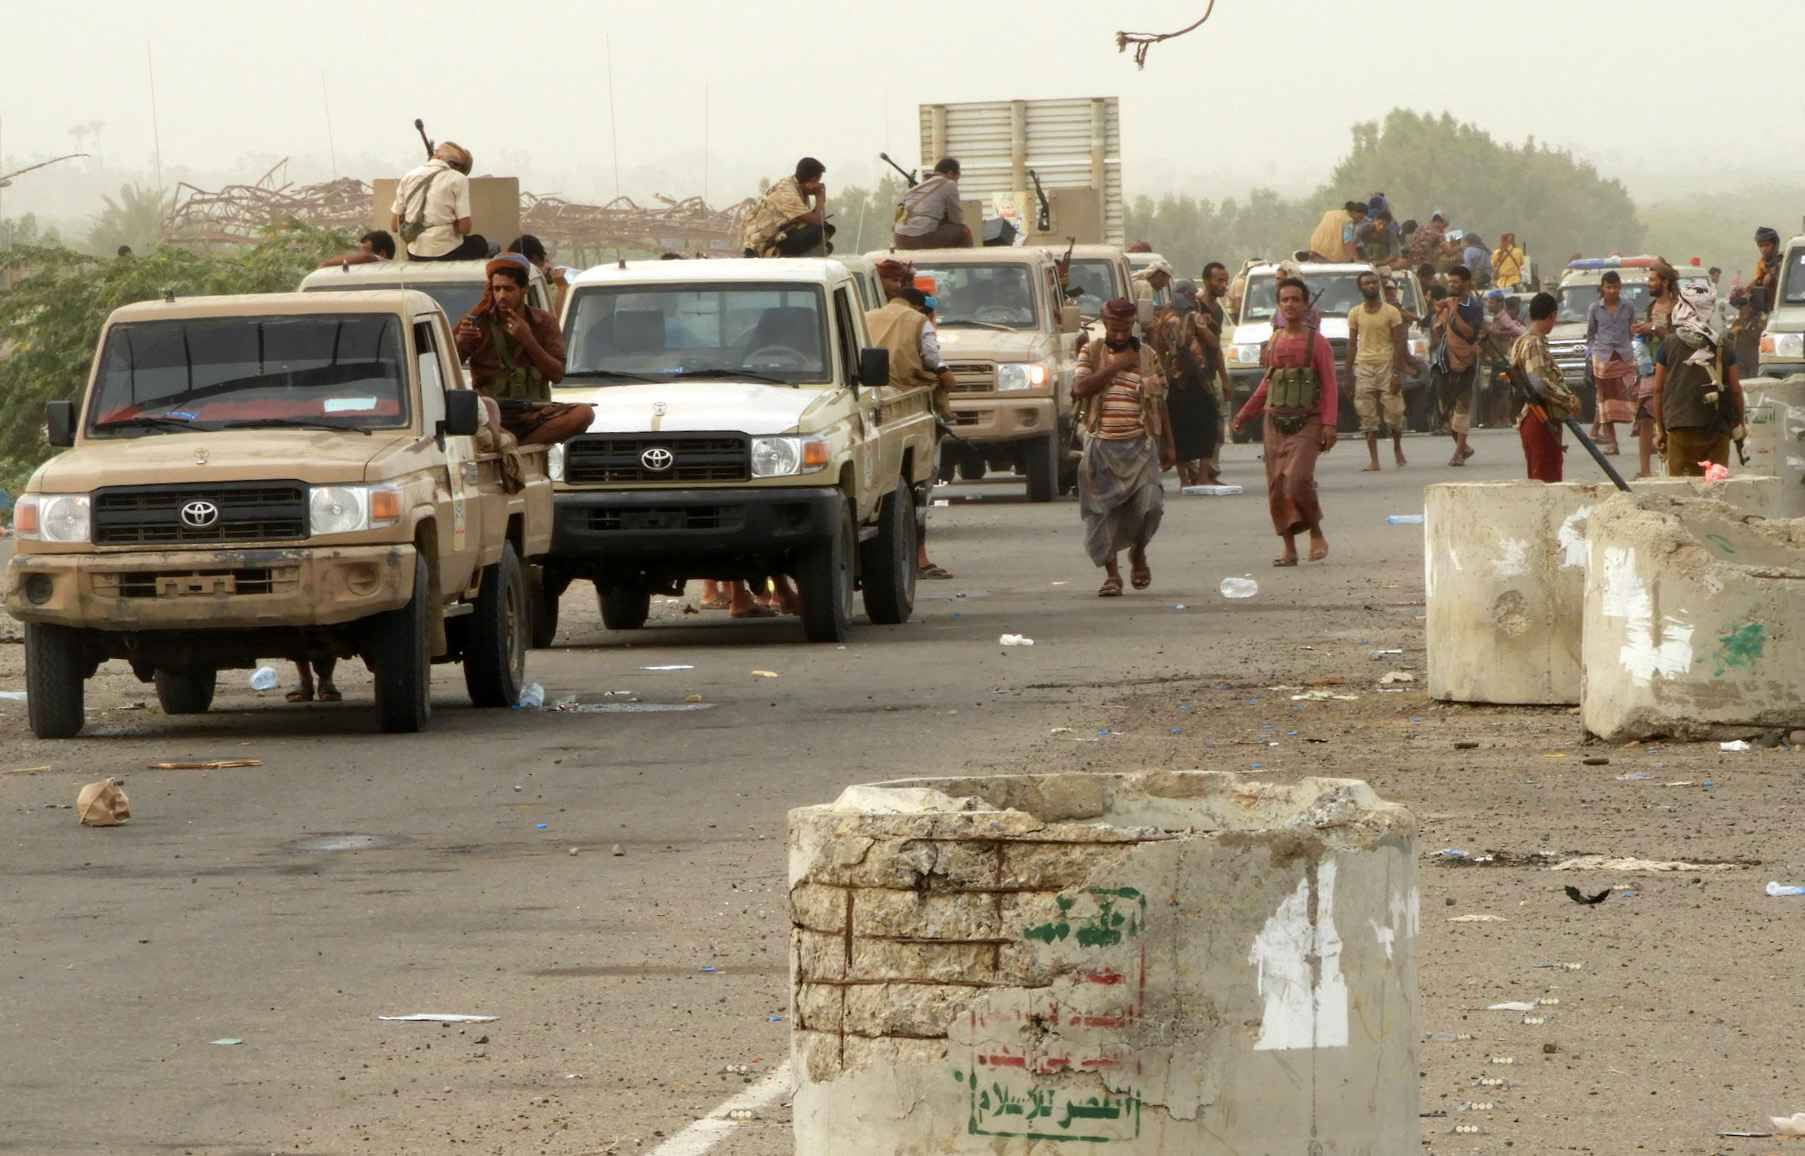 Yemeni pro-government forces arrive in al-Durayhimi district, about nine kilometres south of Hodeidah international airport on June 13, 2018. Yemeni forces backed by the Saudi-led coalition launched an offensive on June 13 to retake the rebel-held Red Sea port city of Hodeida, pressing toward the airport south of the city. The port serves as the entry point for 70 percent of the impoverished country's imports as it teeters on the brink of famine.